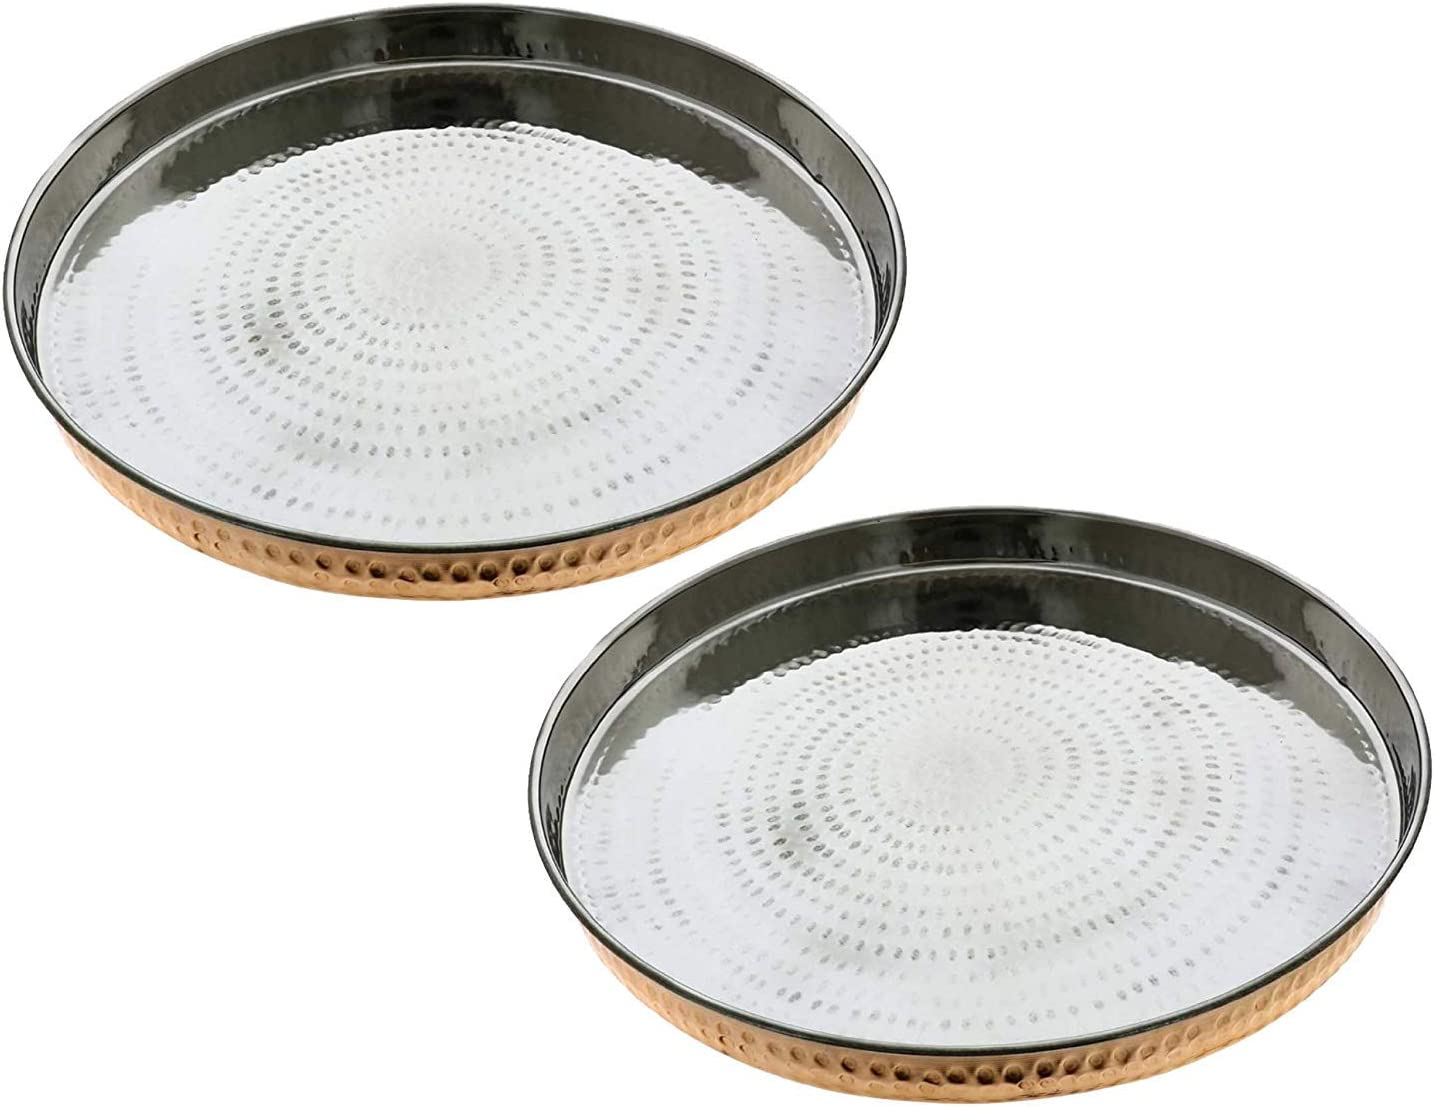 Set of 2 Hammered Copper & Stainless Steel Dinner Plate Thali Tableware Dinnerware for Indian Food and Dishes 13 Inches